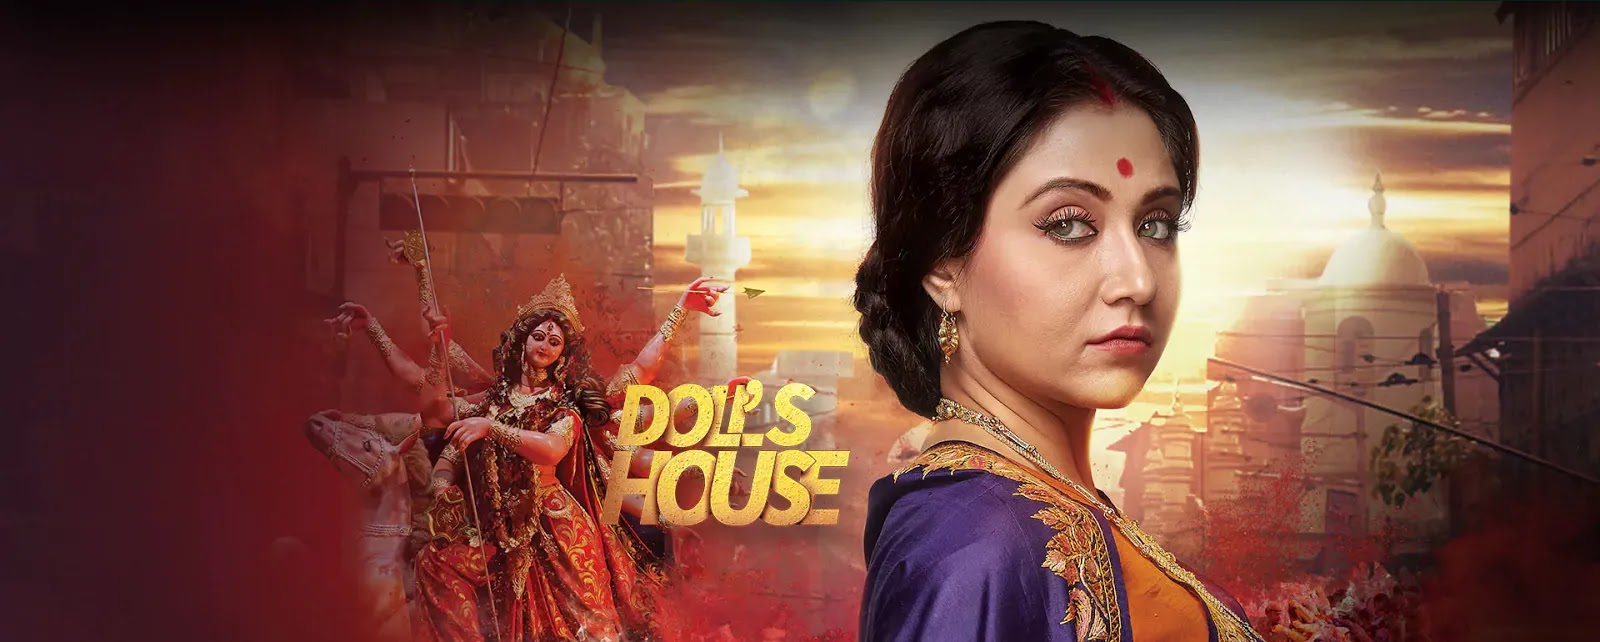 Doll S House Movie 2018 Hd Movie Download